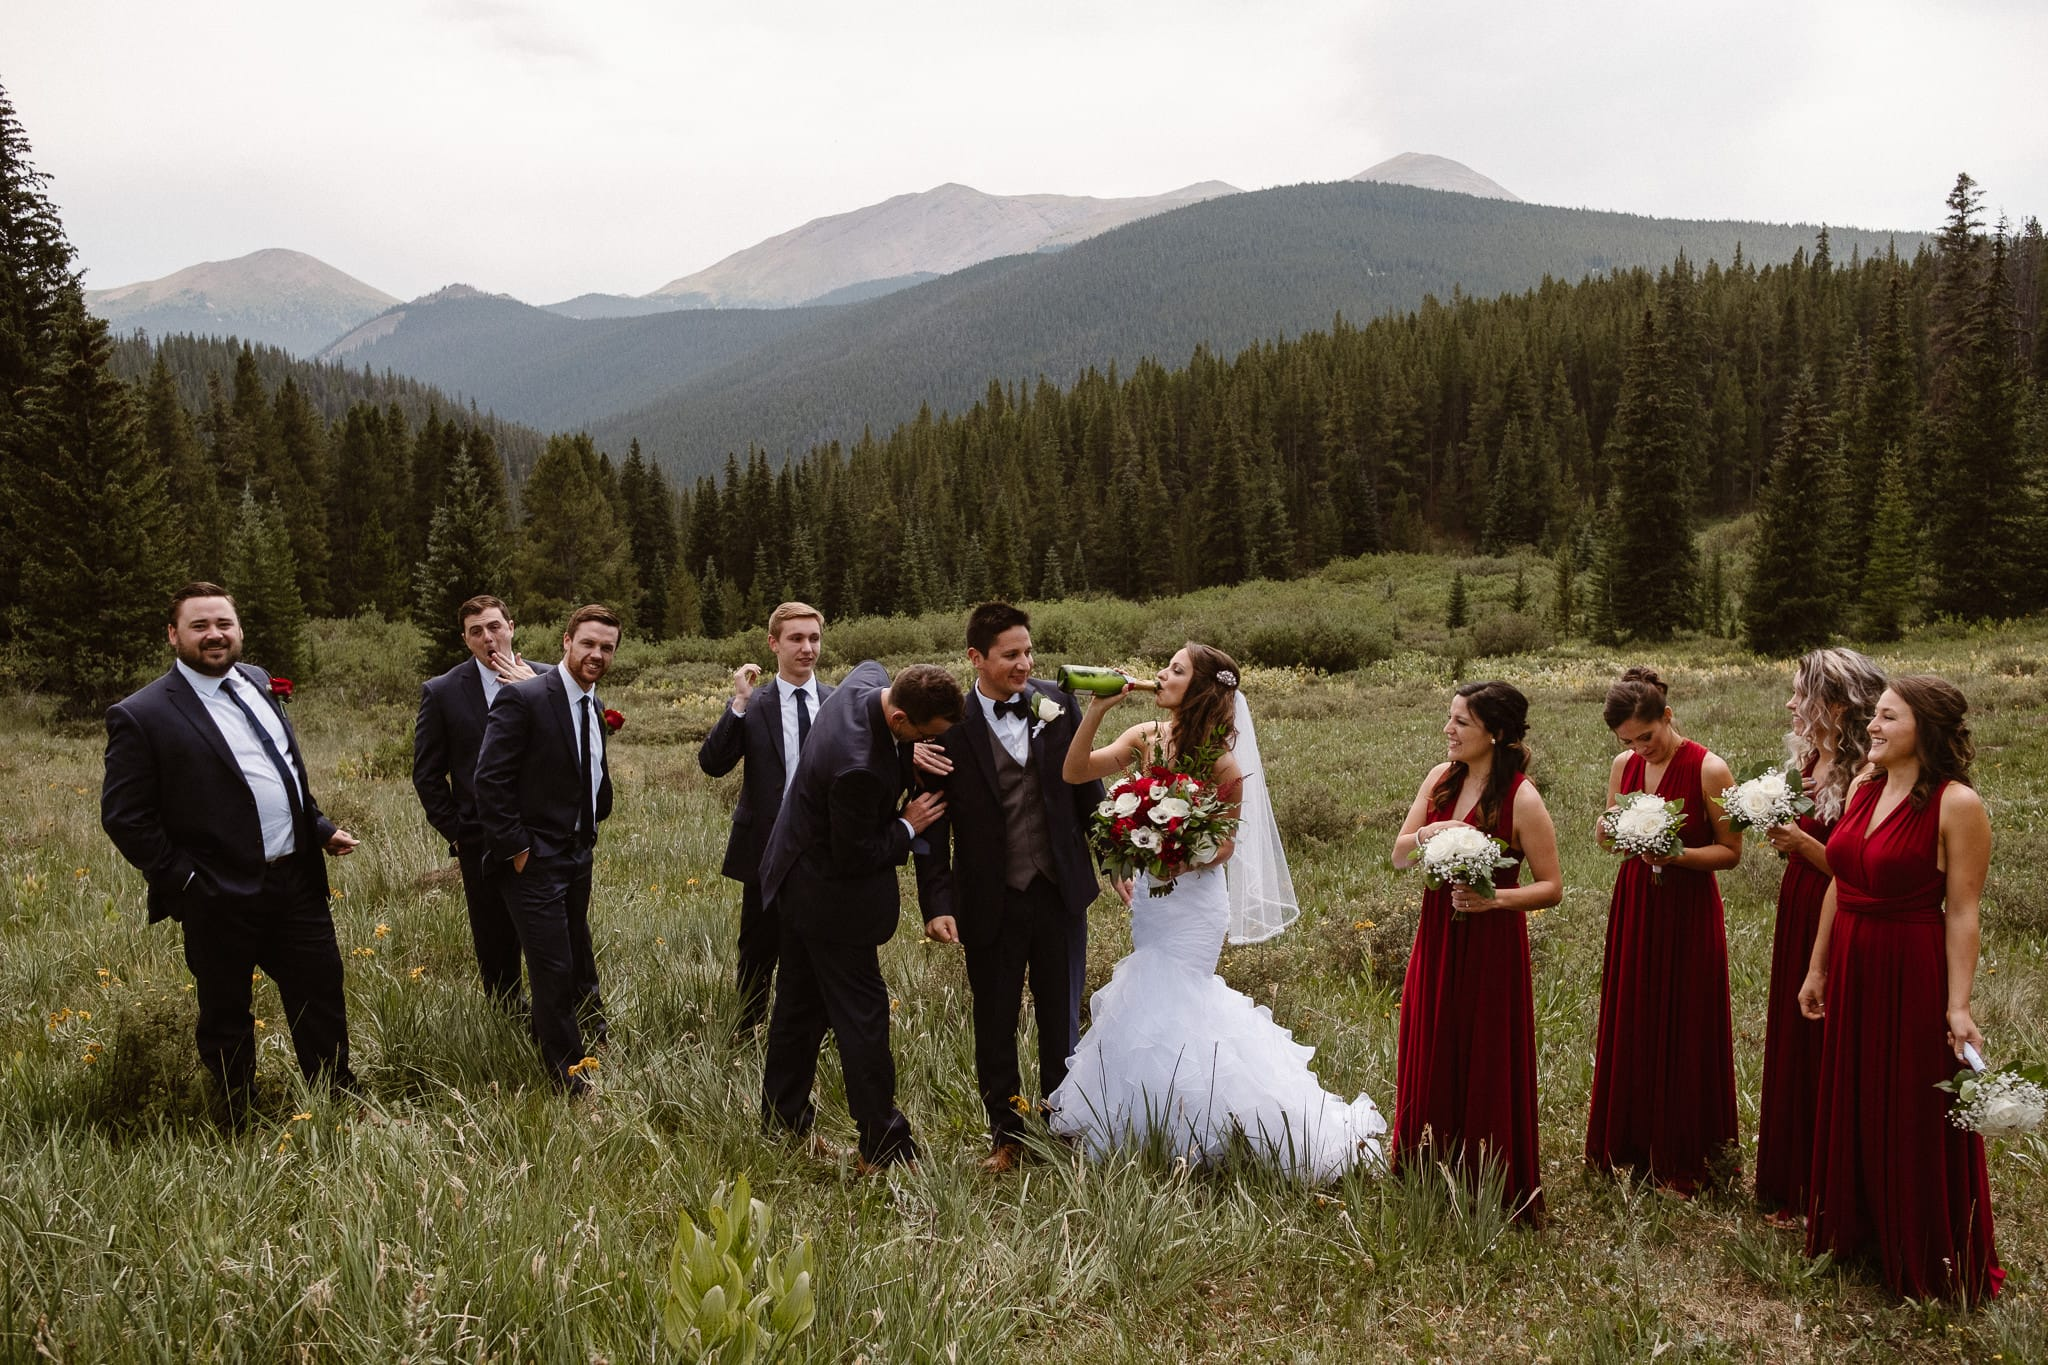 Lodge at Breckenridge Wedding Photographer, Colorado mountain wedding photographer, intimate wedding, bride and groom walking through alpine meadow with wedding party, bride and groom portrait, wedding photos, dark red bridesmaid dresses, bride and groom drinking champagne